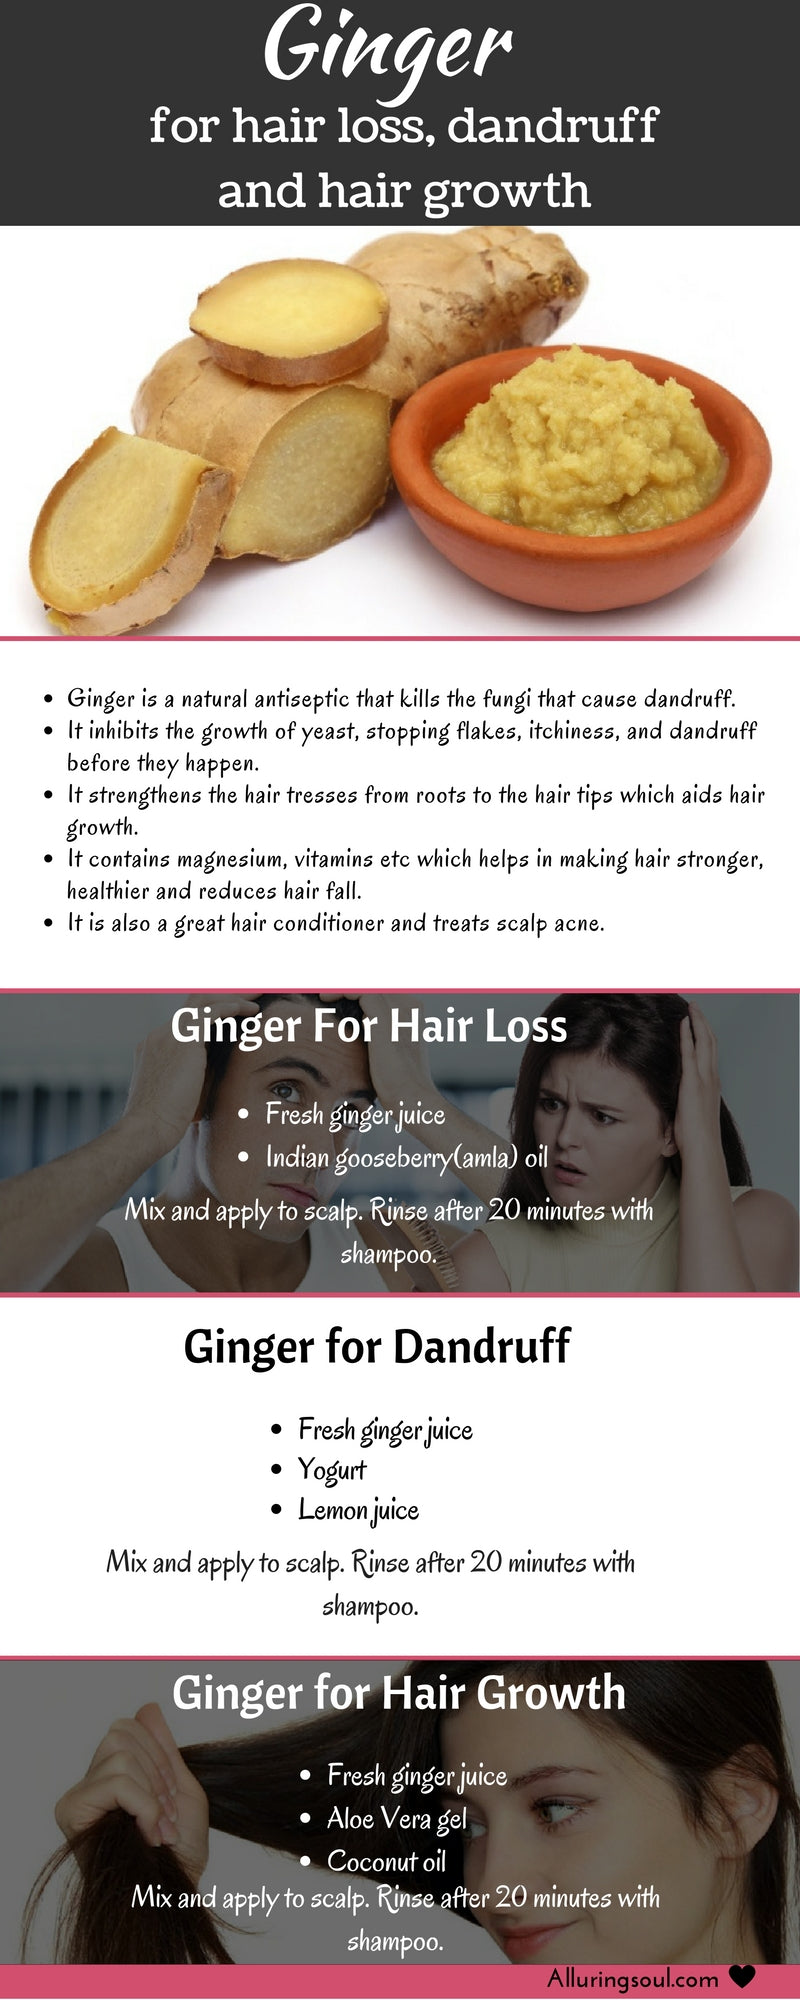 Ginger For Hair Growth Benefits